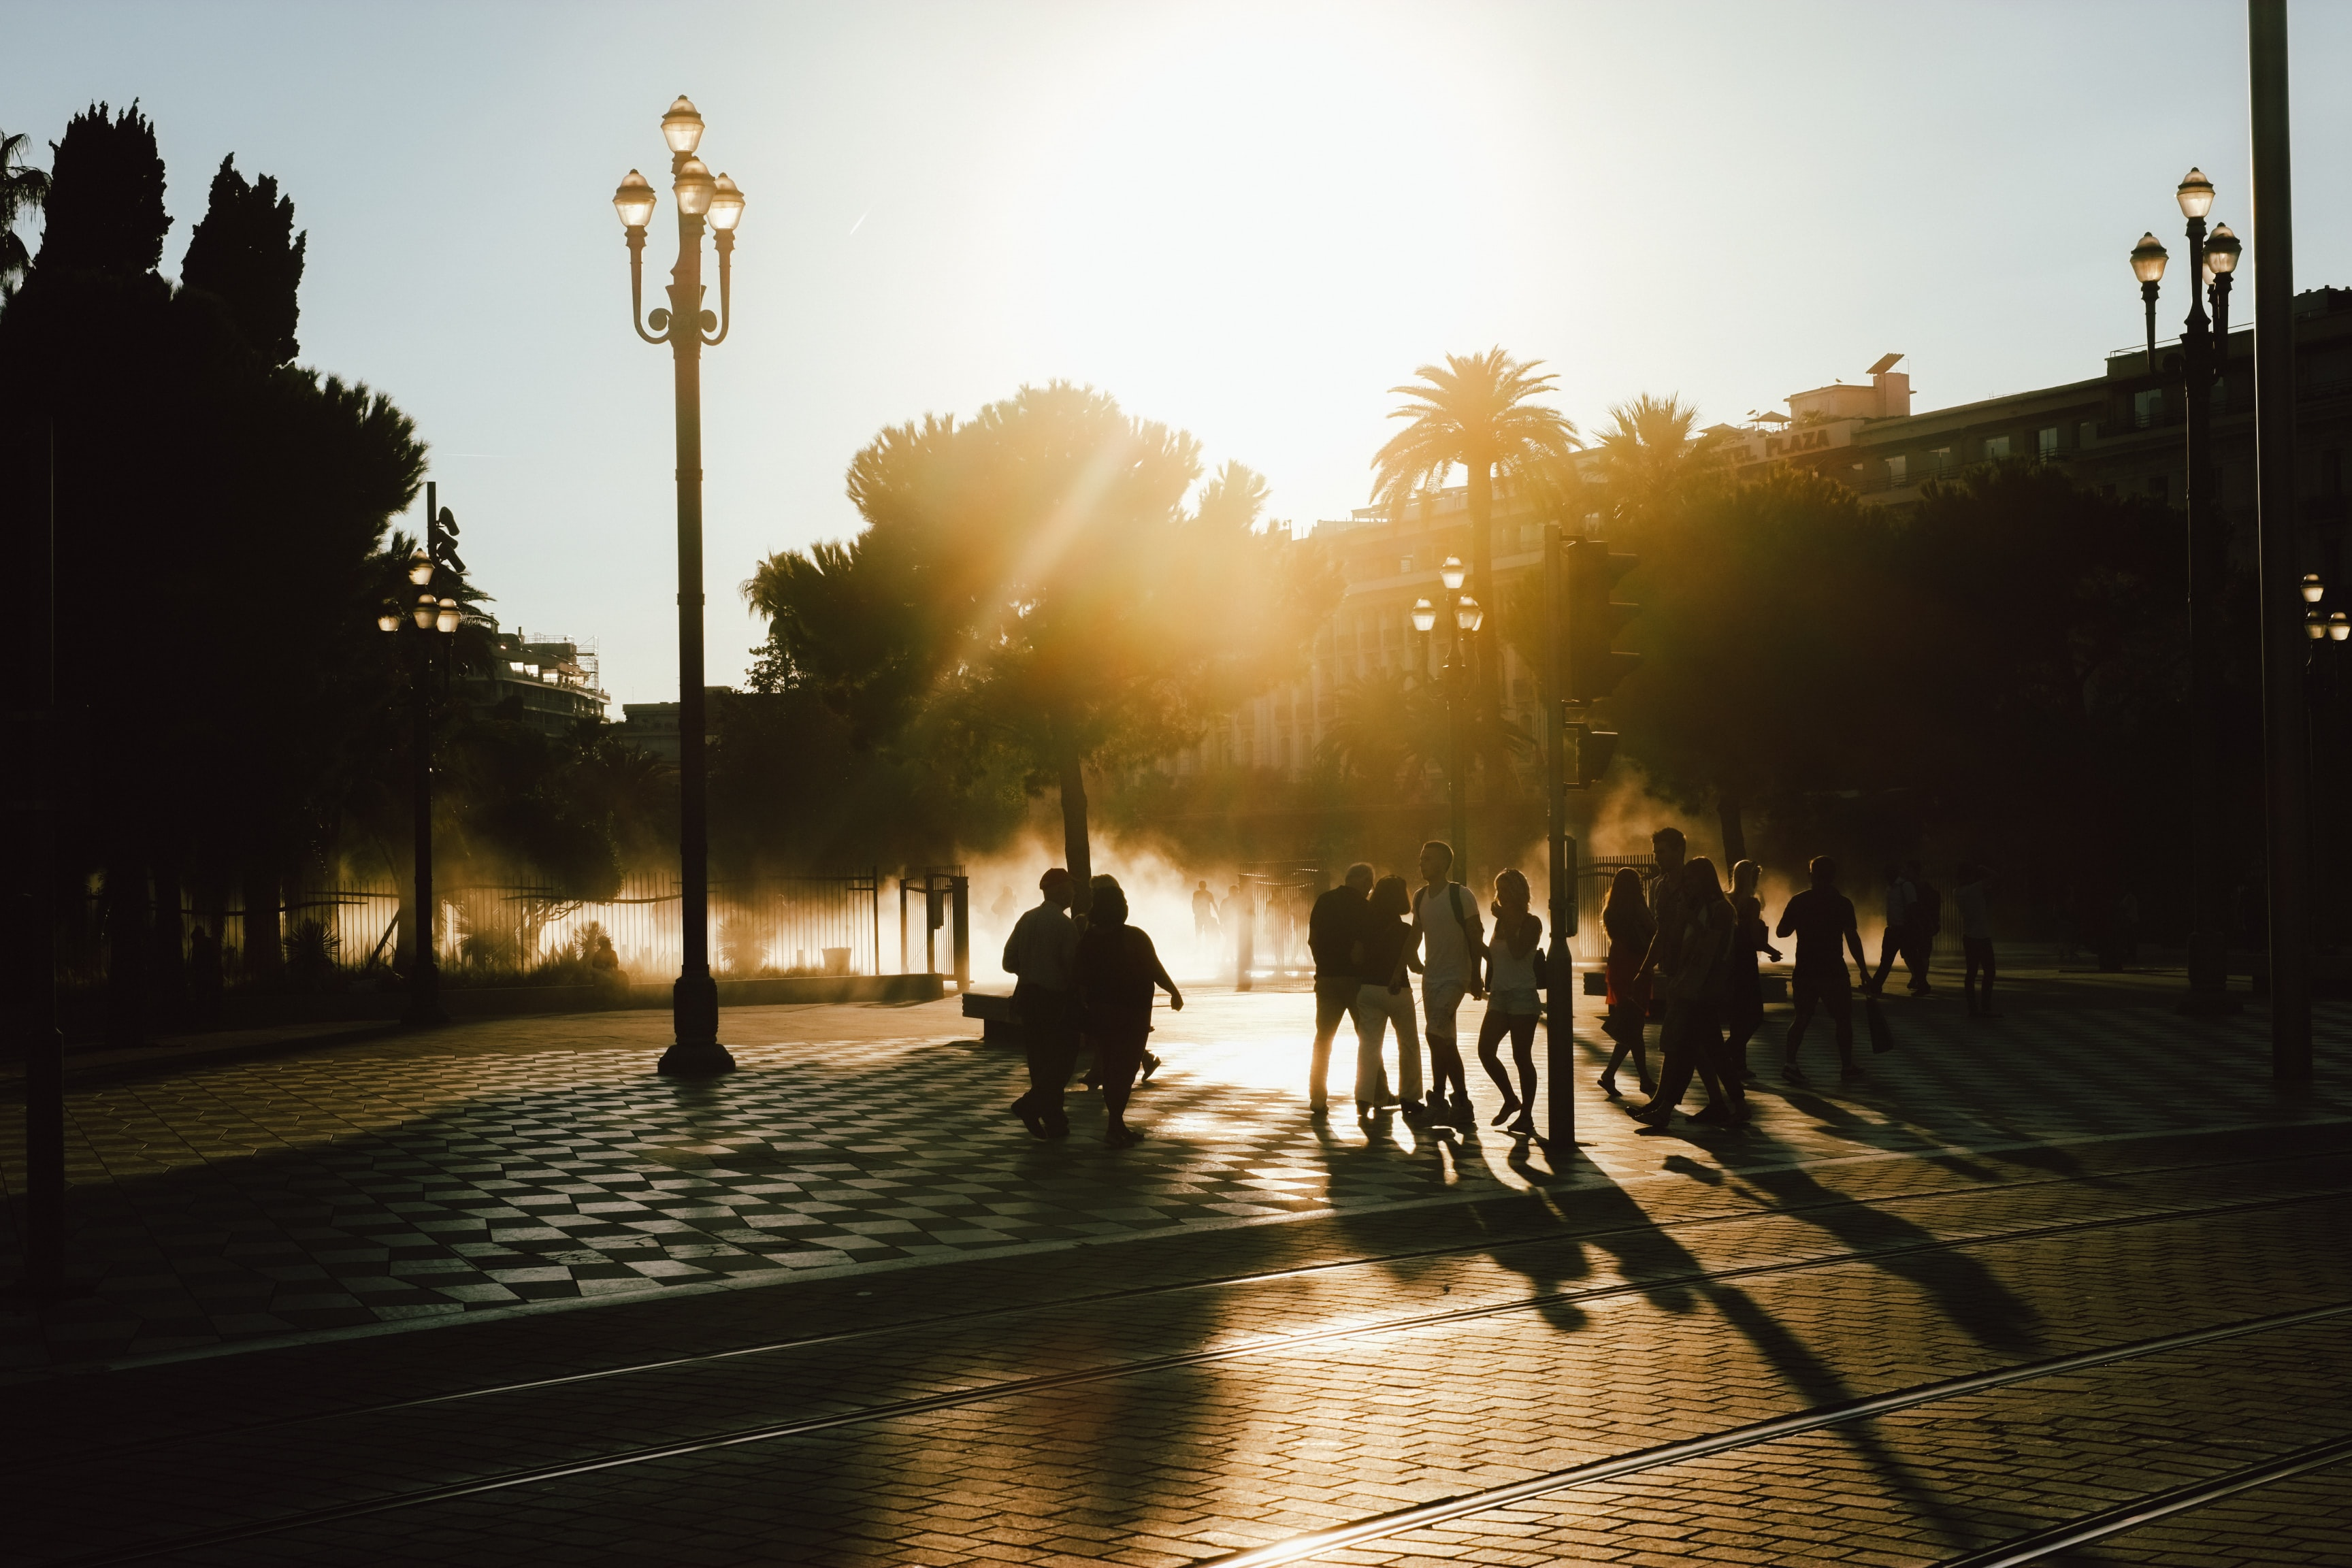 Silhouettes of pedestrians on the streets of Nice, as the sun sets behind palm trees in the distance